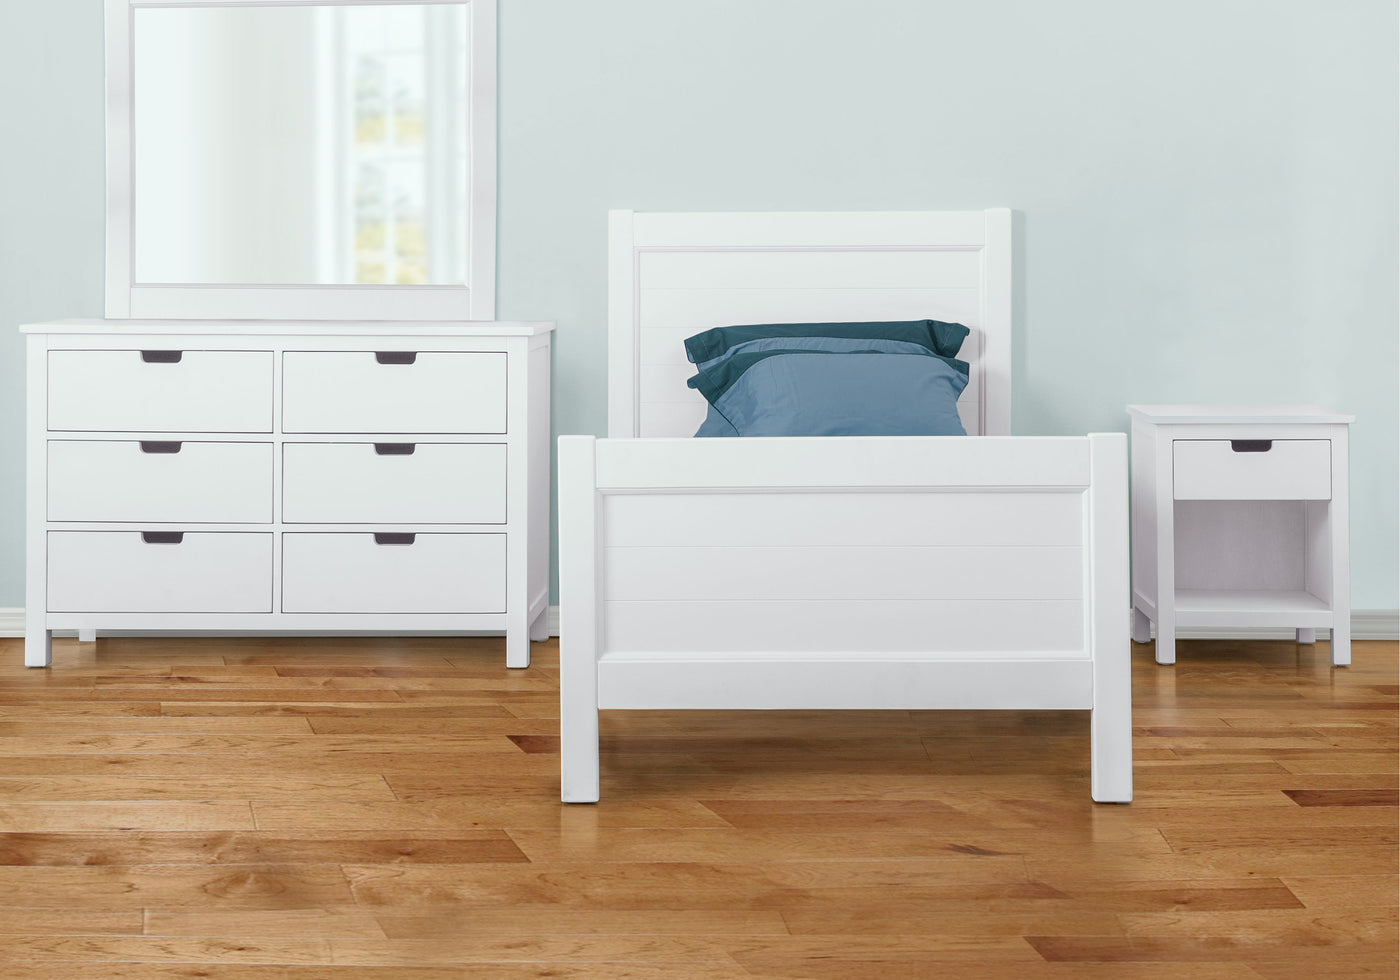 P'kolino Nesto Beds - twin beds, bunk beds and more